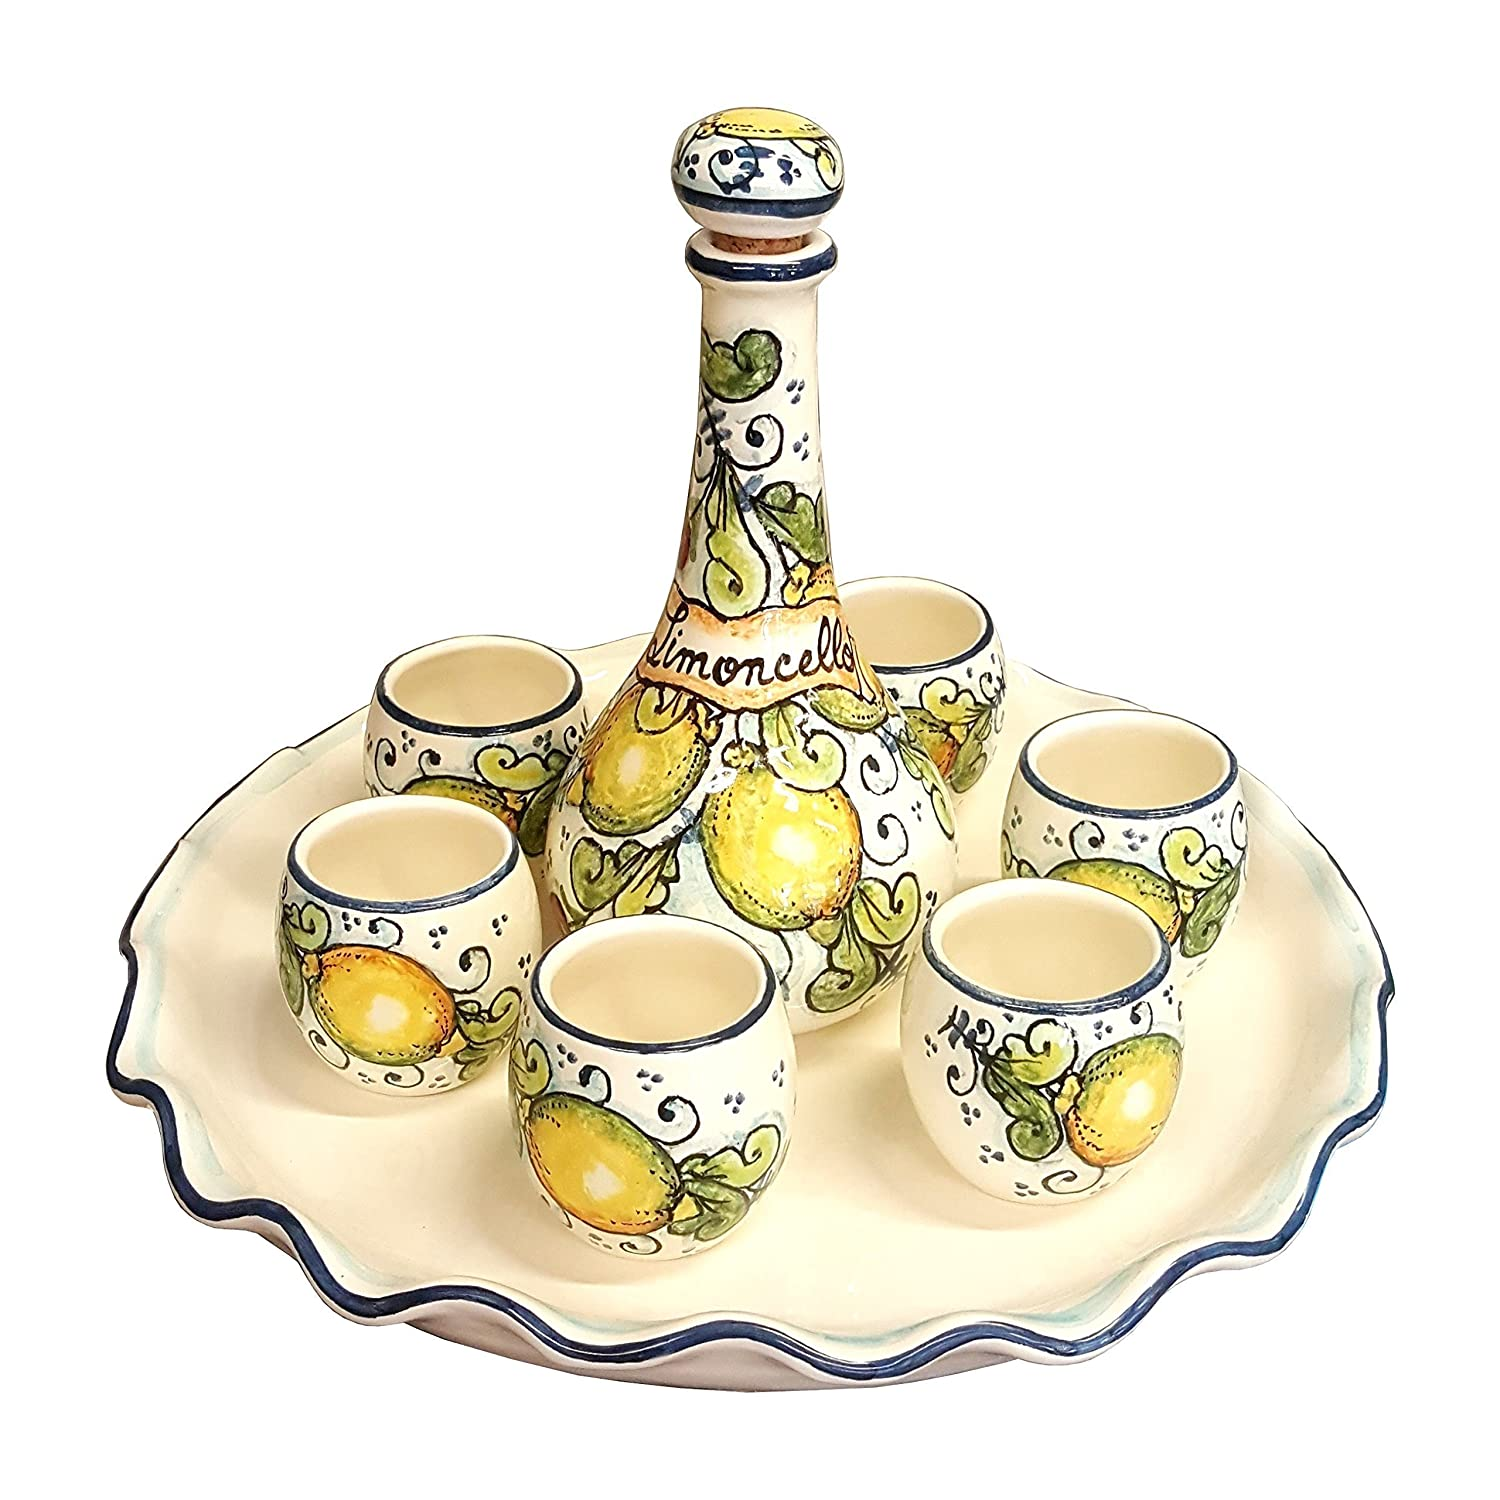 Italian Ceramic Pottery Set Includes Tray, Bottle, 6 Limoncello Cups Hand Painted with Lemons and Blue Detailing